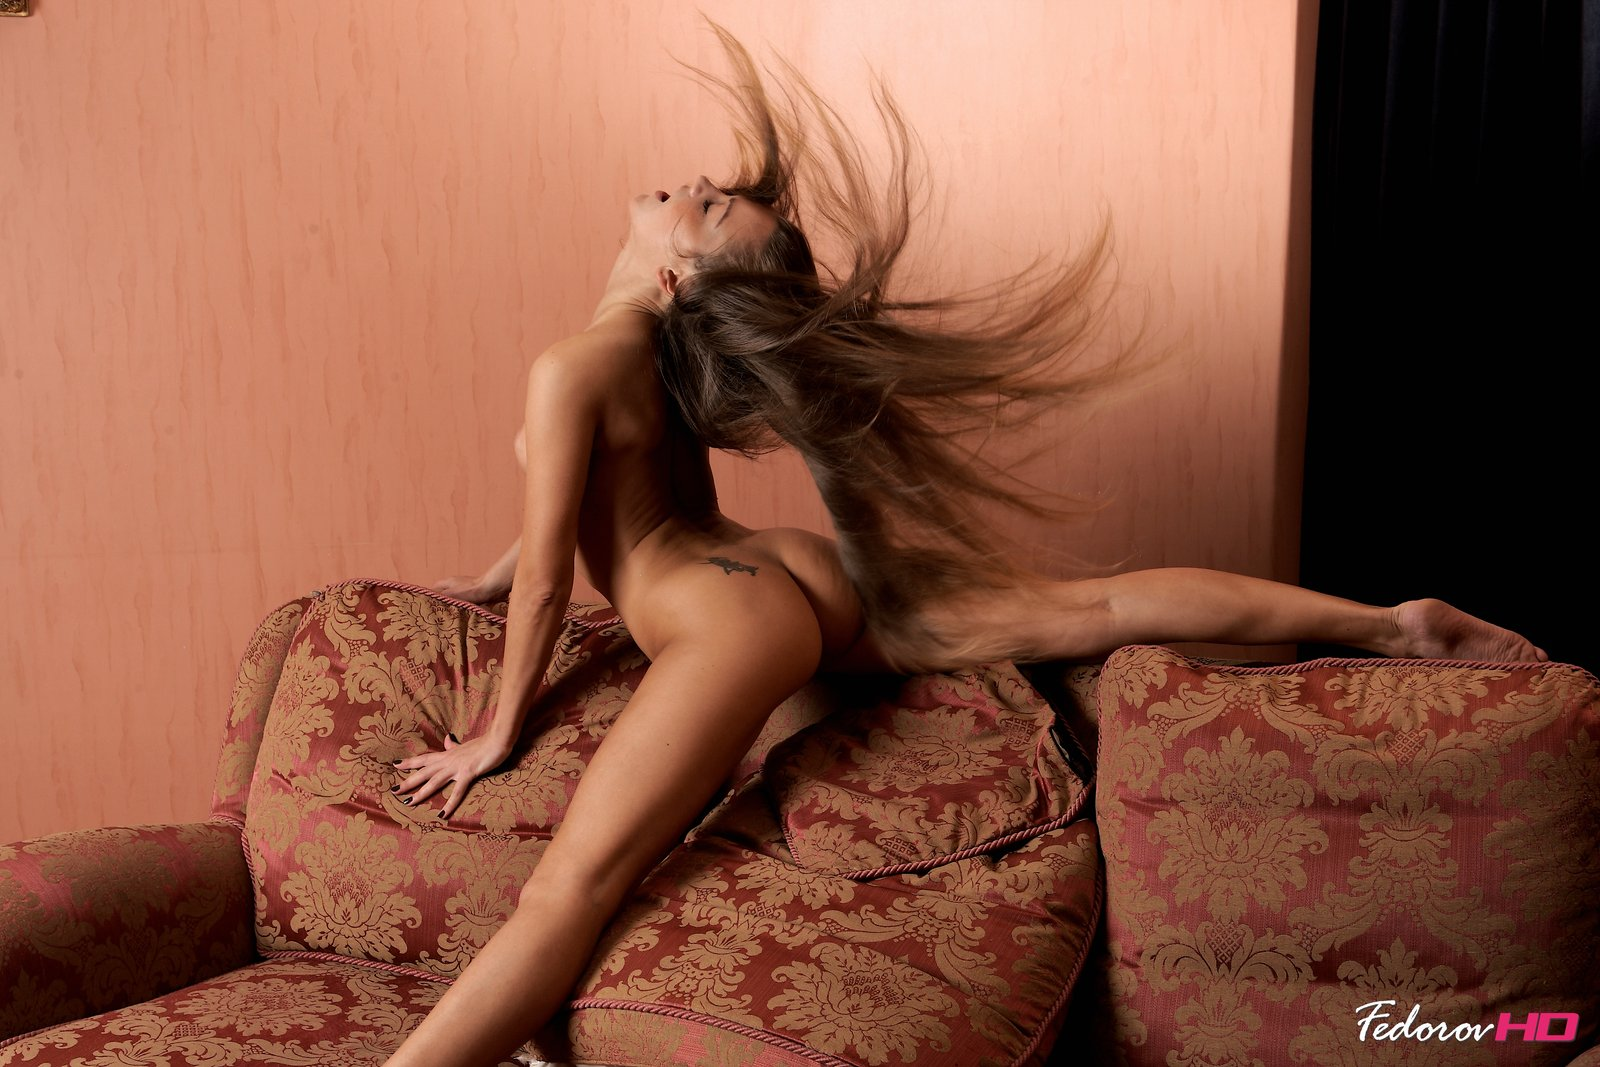 Carefree and wild, her hair flies in motion as this flexible babe stretches in a sexual manner